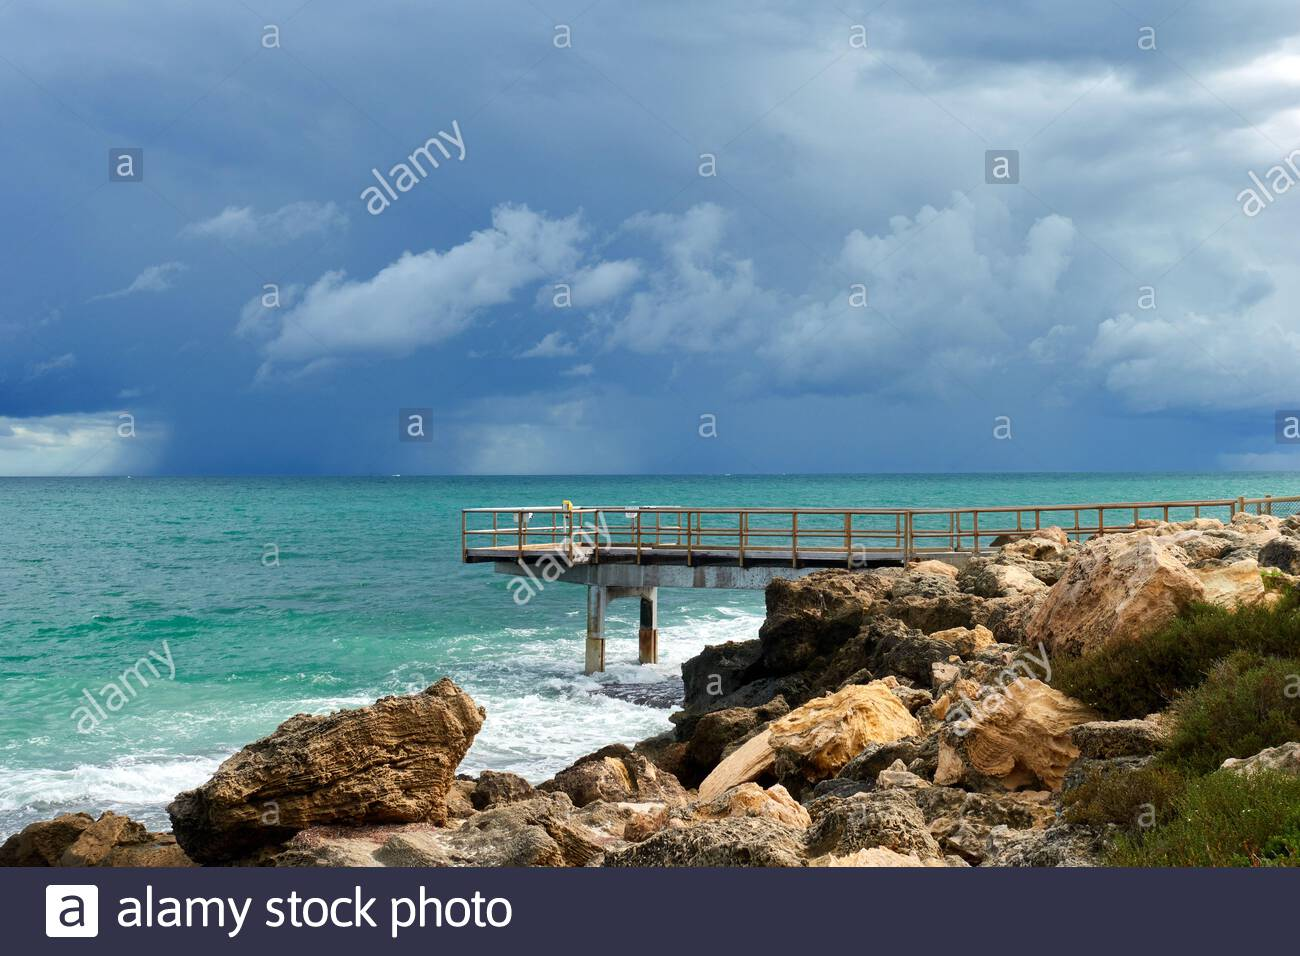 a-raincloud-out-to-sea-as-seen-from-north-beach-with-the-north-beach-jetty-in-the-foreground-perth-western-australia-2FMPK8C.jpg